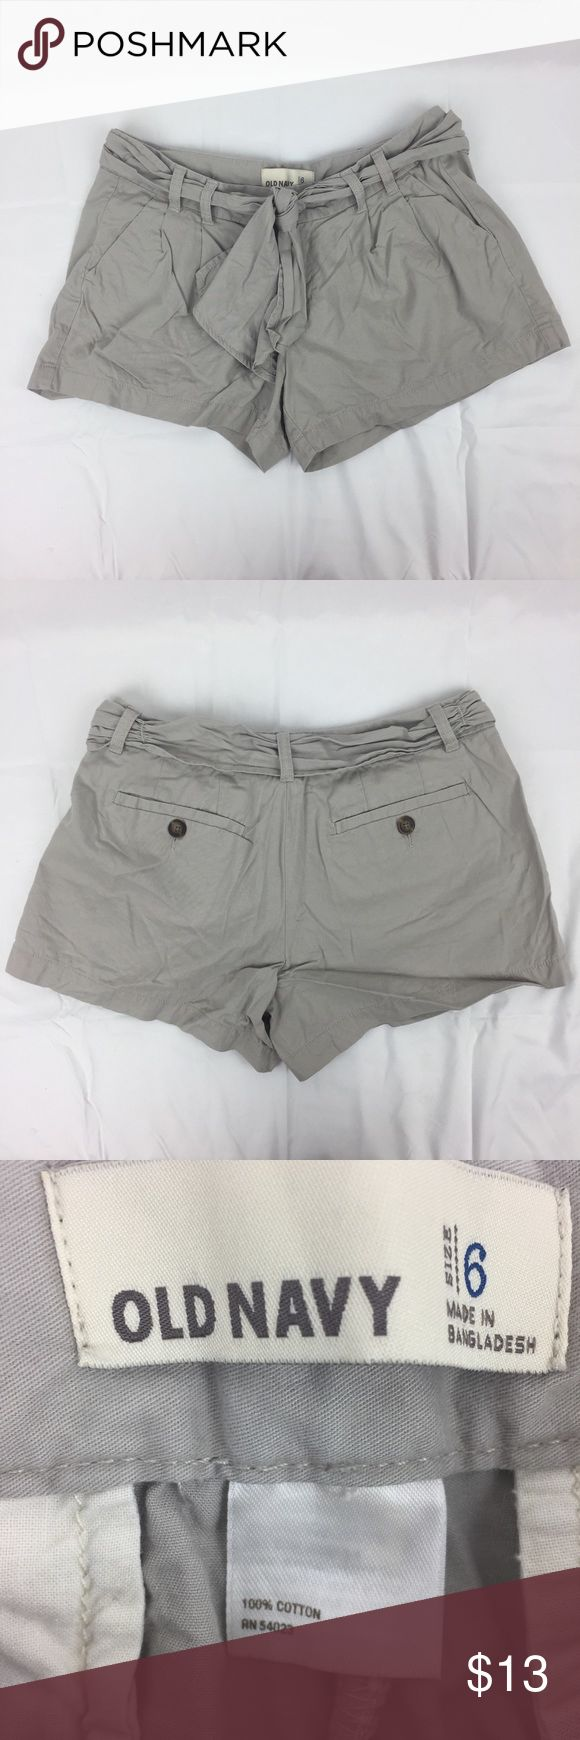 """Old Navy light gray shorts with self-tie belt Old Navy light gray shorts with self-tie belt  Condition:  EUC / no flaws noted   Waist = ~31"""" Rise (front) = ~8"""" Inseam = ~3.5"""" Old Navy Shorts"""